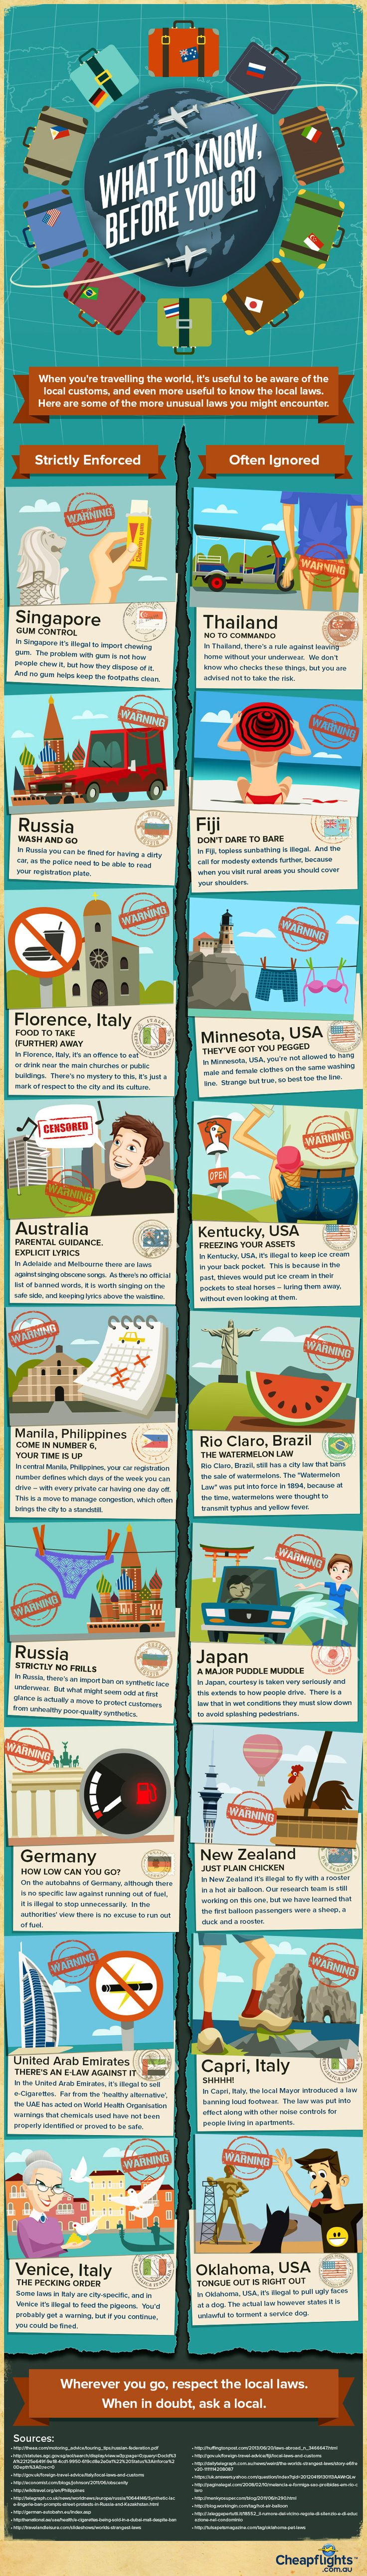 Strange Laws Around the World #infographic #Entertainment #FunnyLaws #Travel #Laws